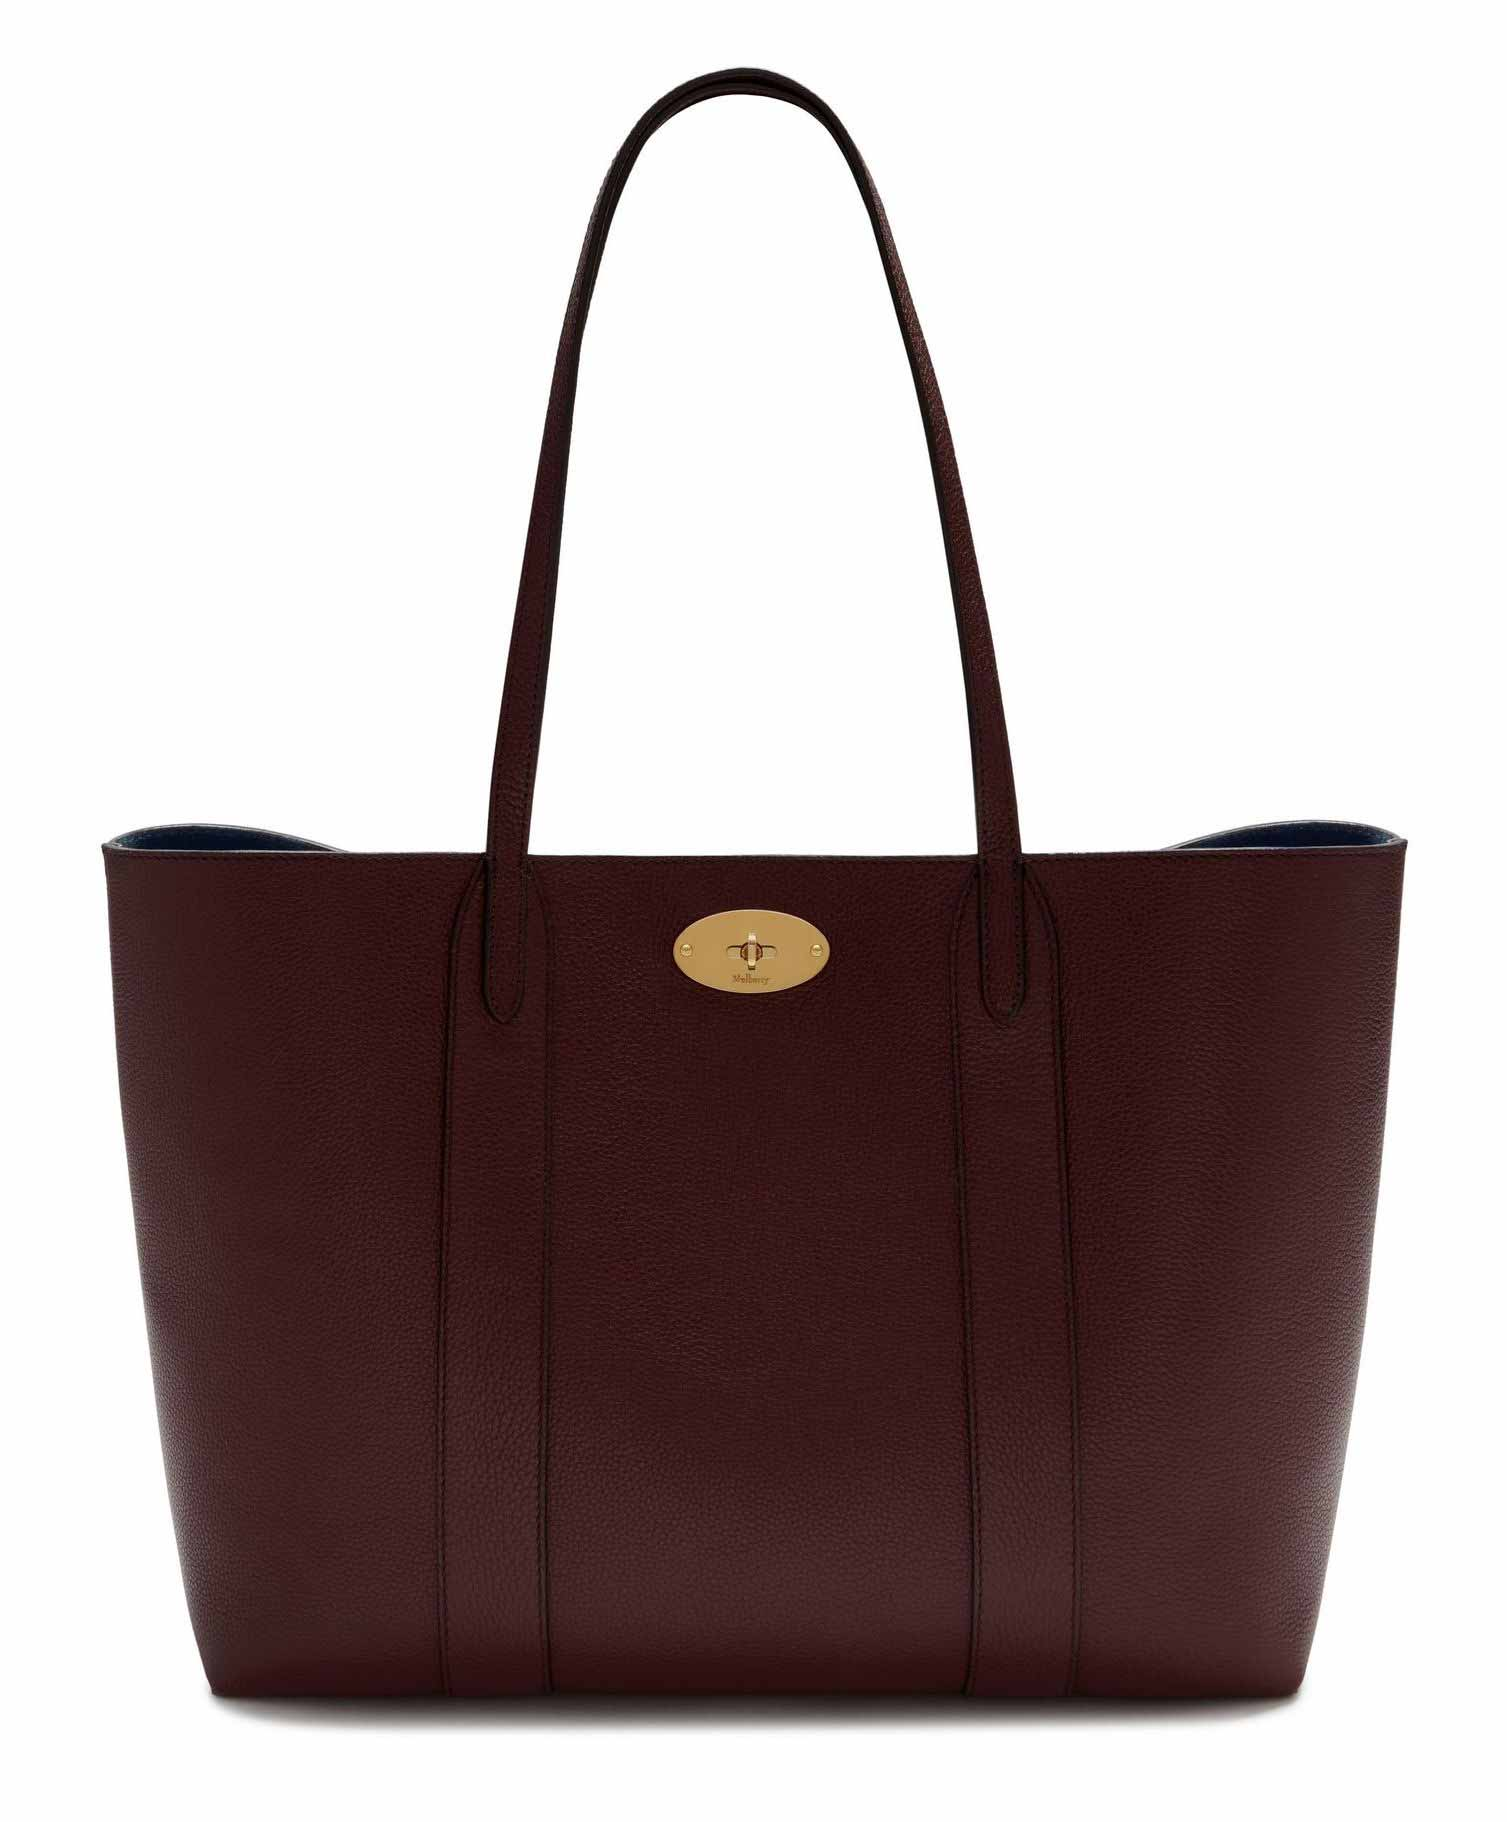 43730ab9bf56 Why You Need These 6 Classic Mulberry Bags